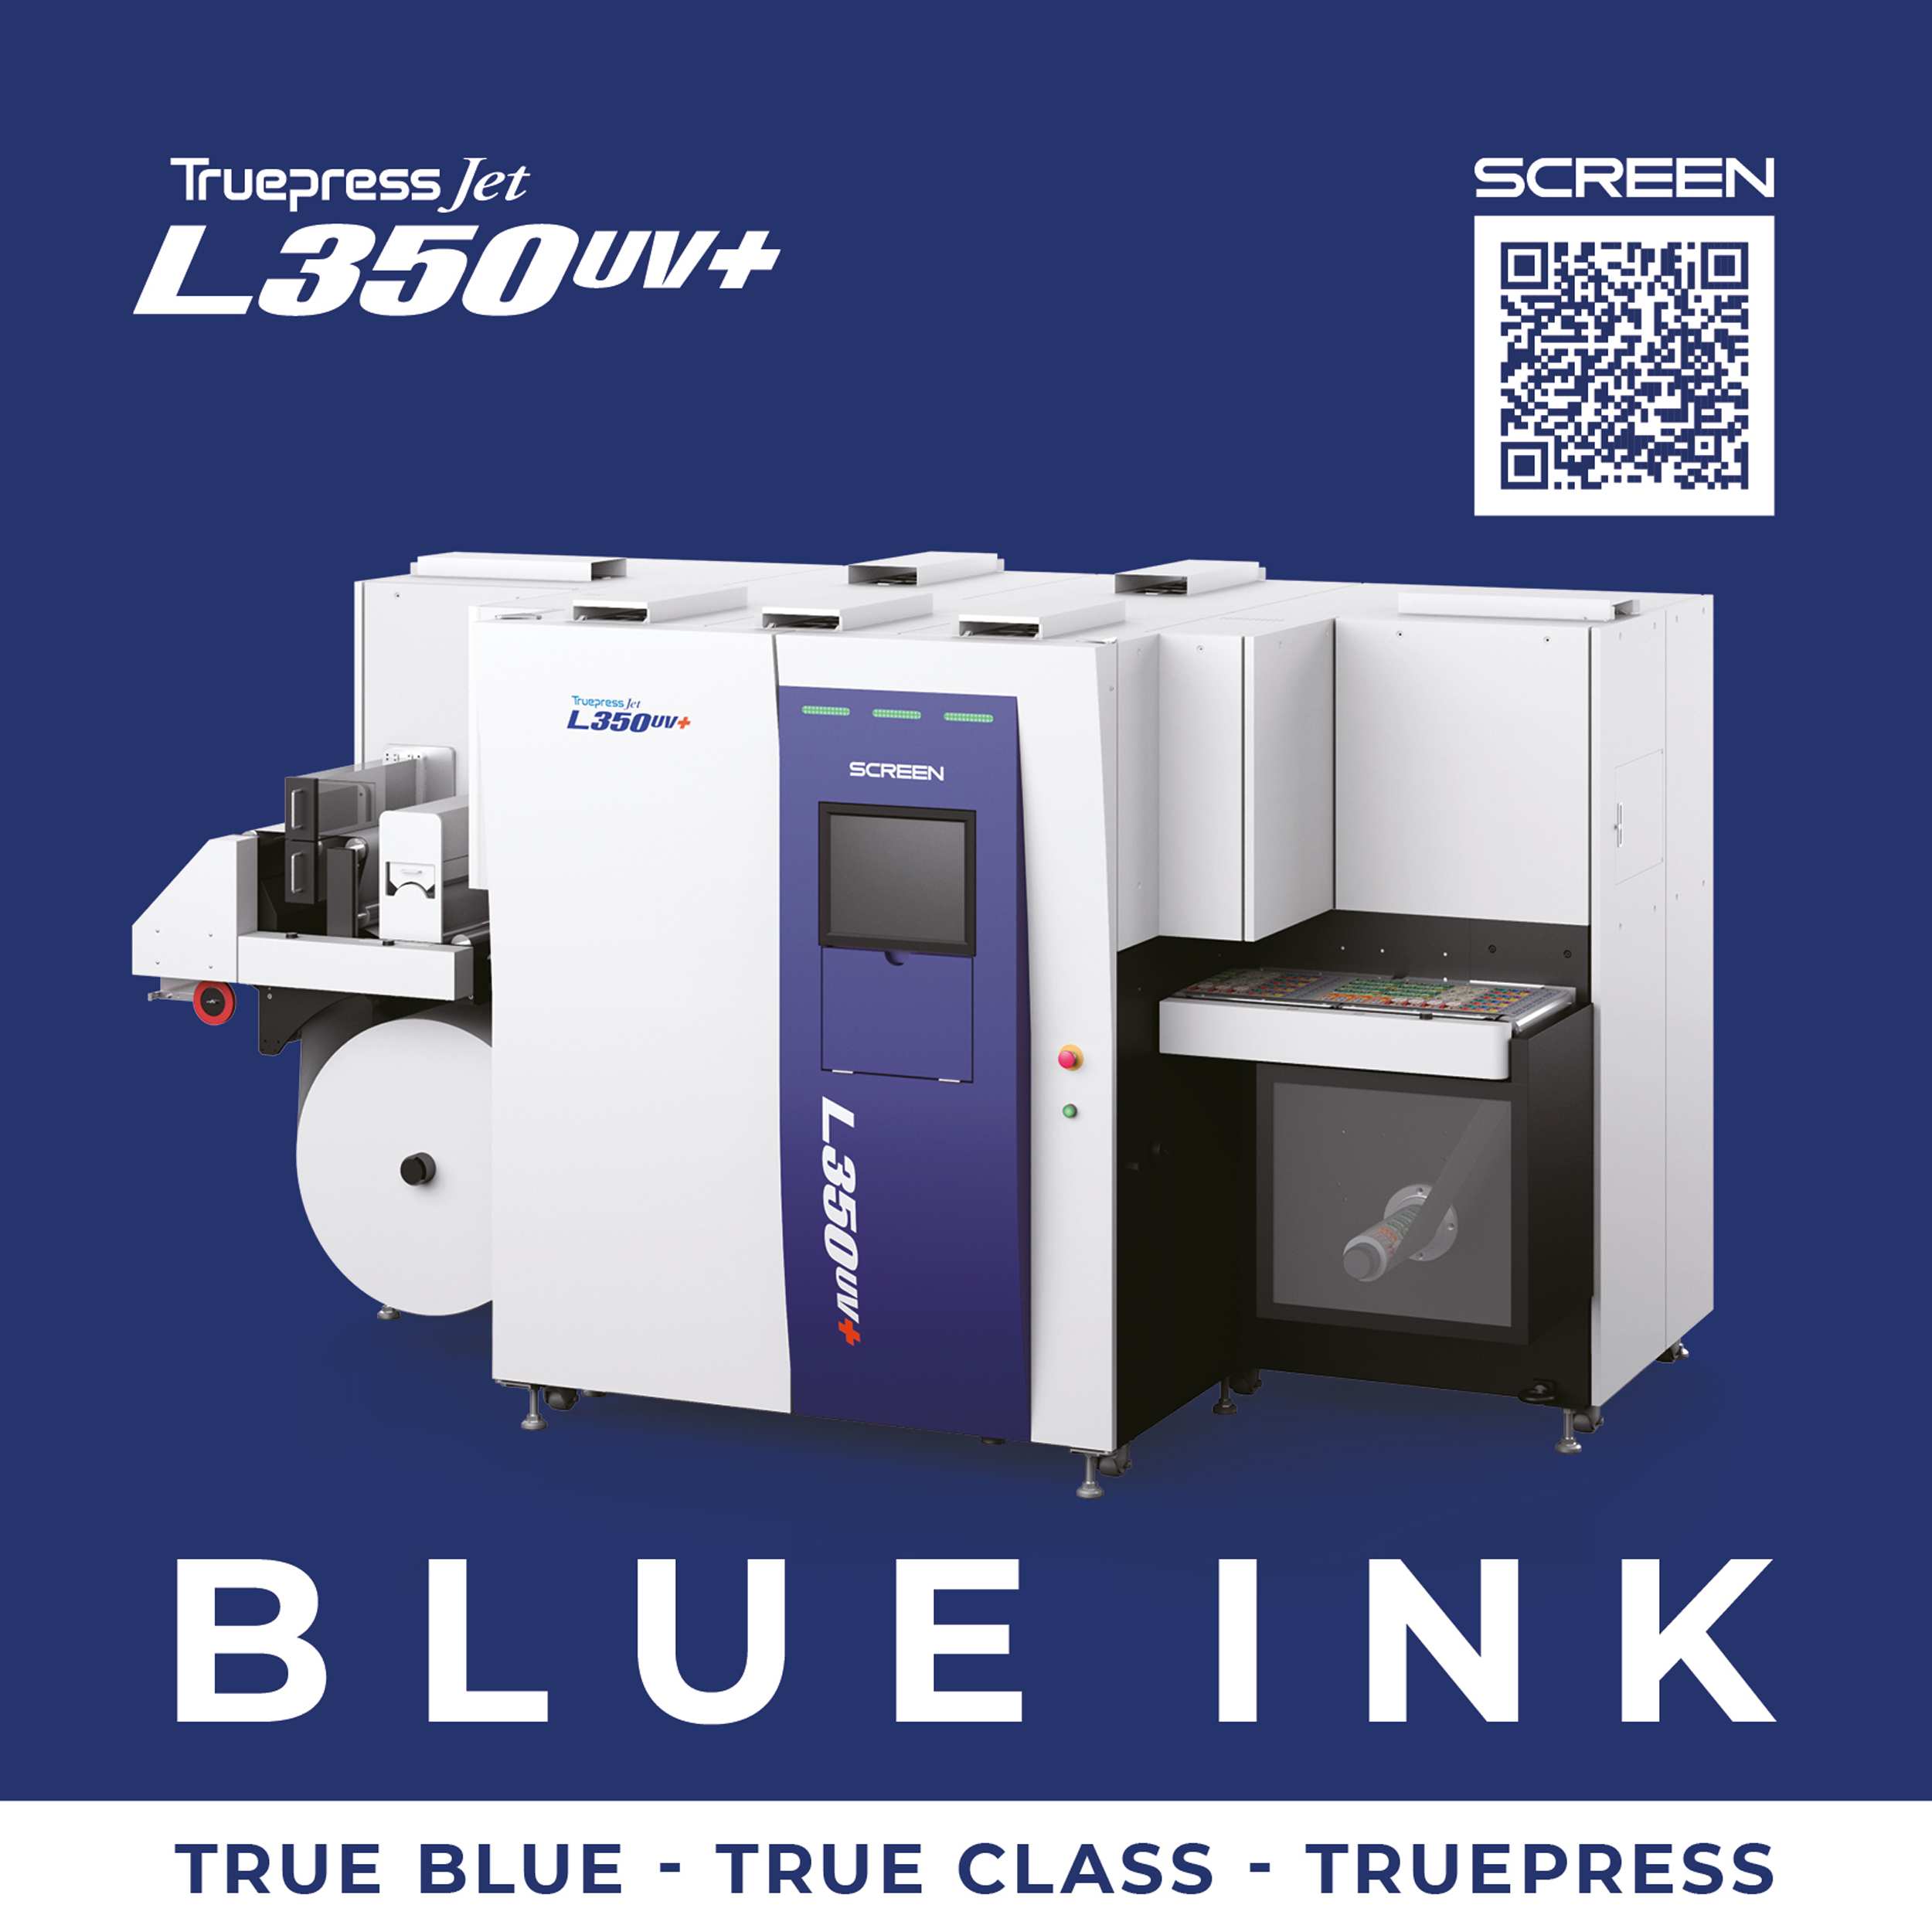 Image from SCREEN DEVELOPS BLUE INK FOR TRUEPRESS JET L350UV+